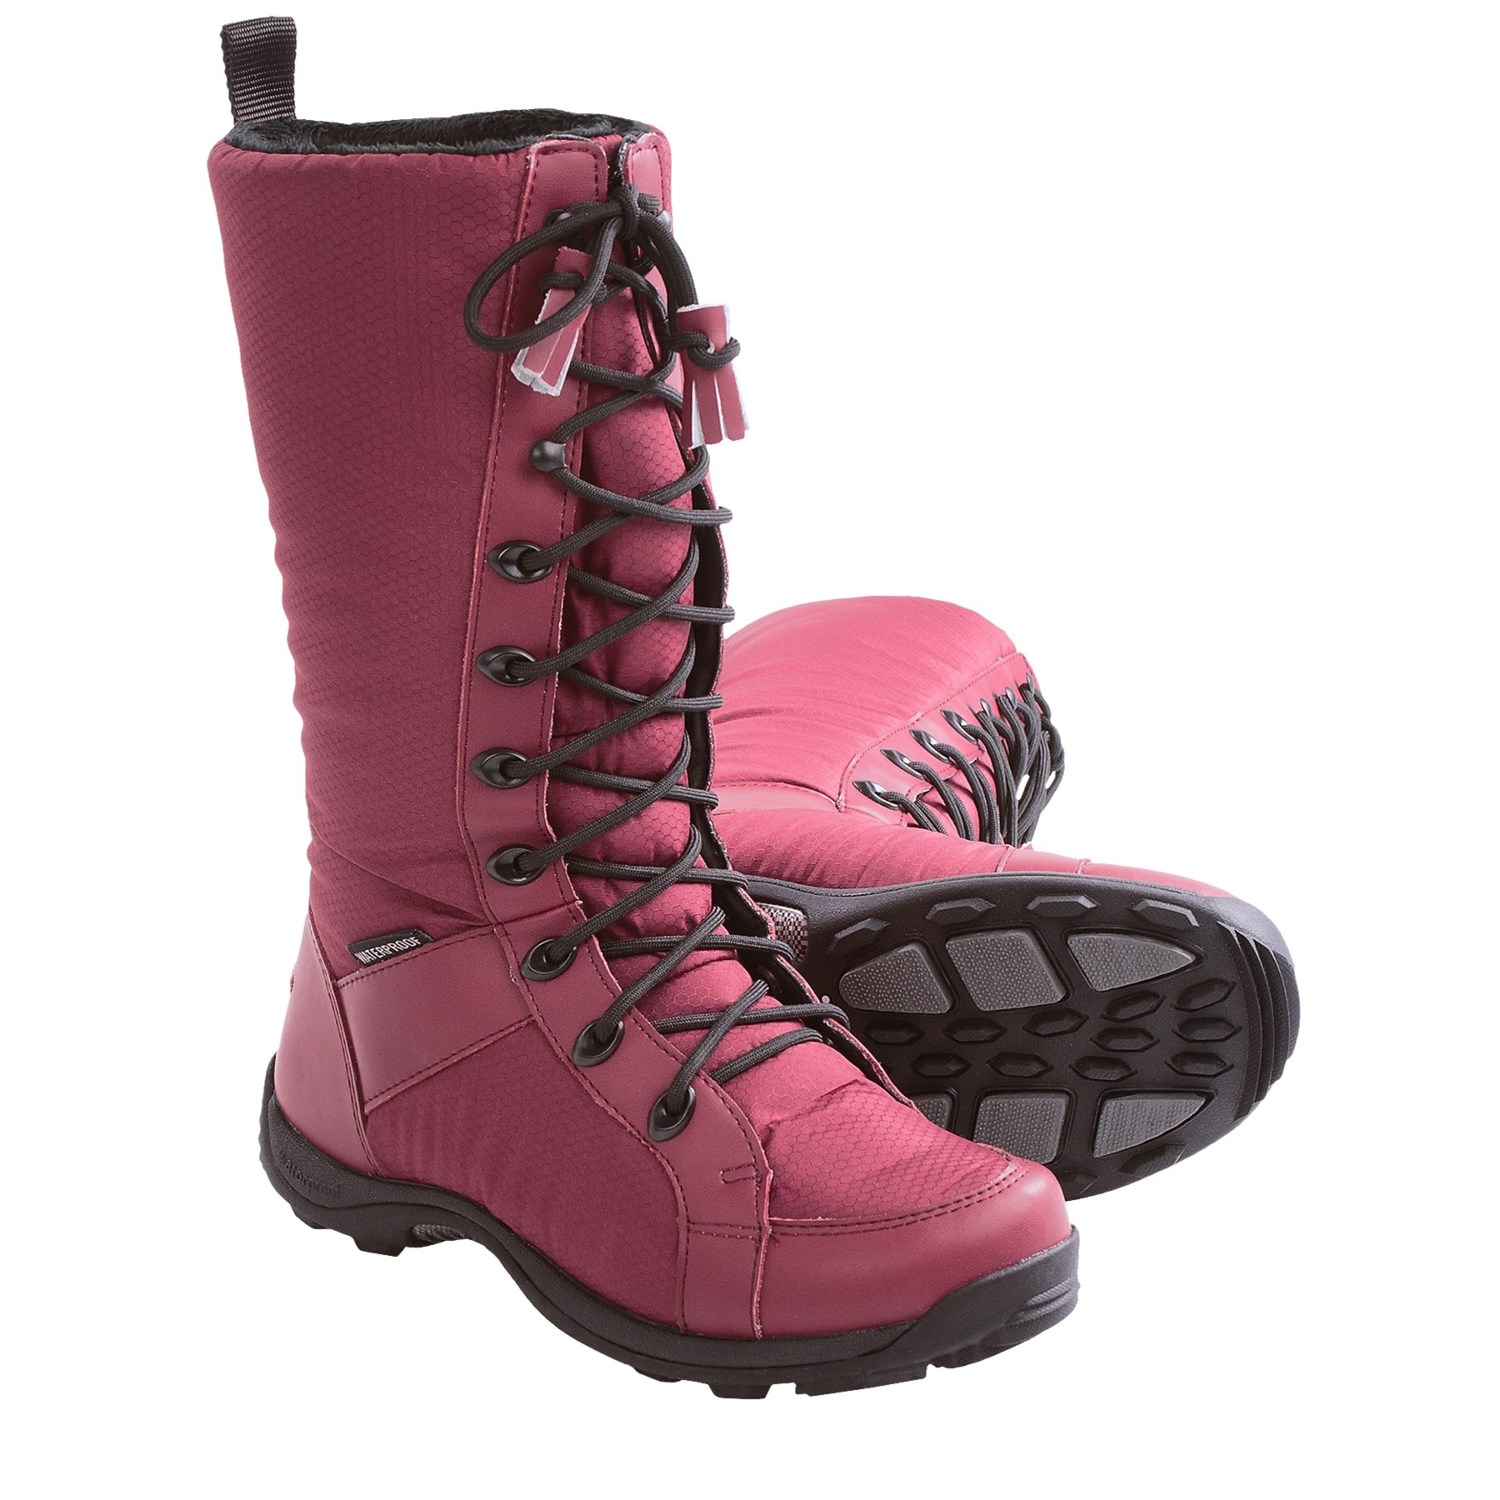 Baffin Chicago Winter Boots (For Women) - Save 66%